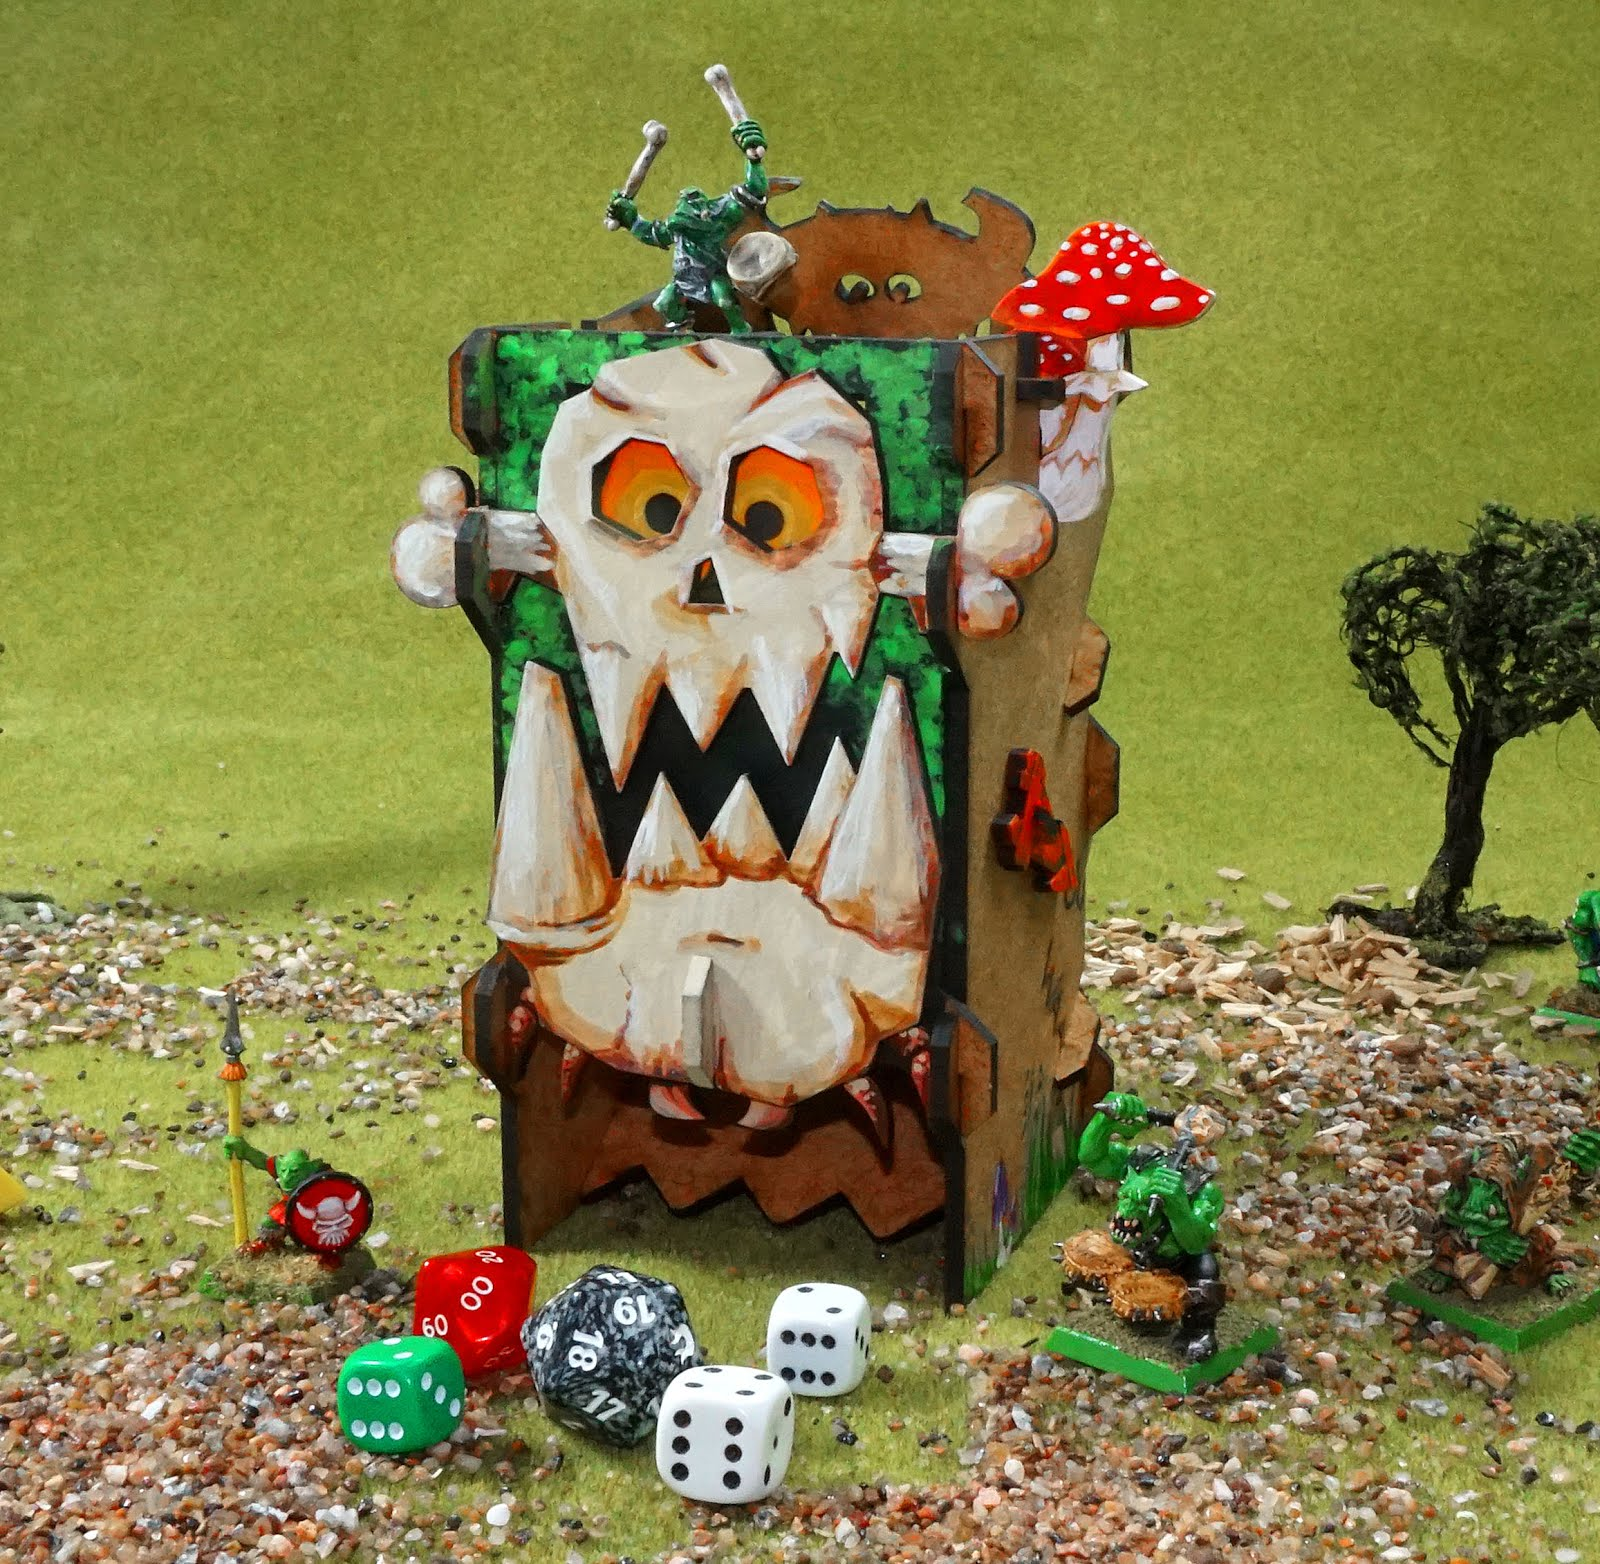 Mechanical Dice Towers